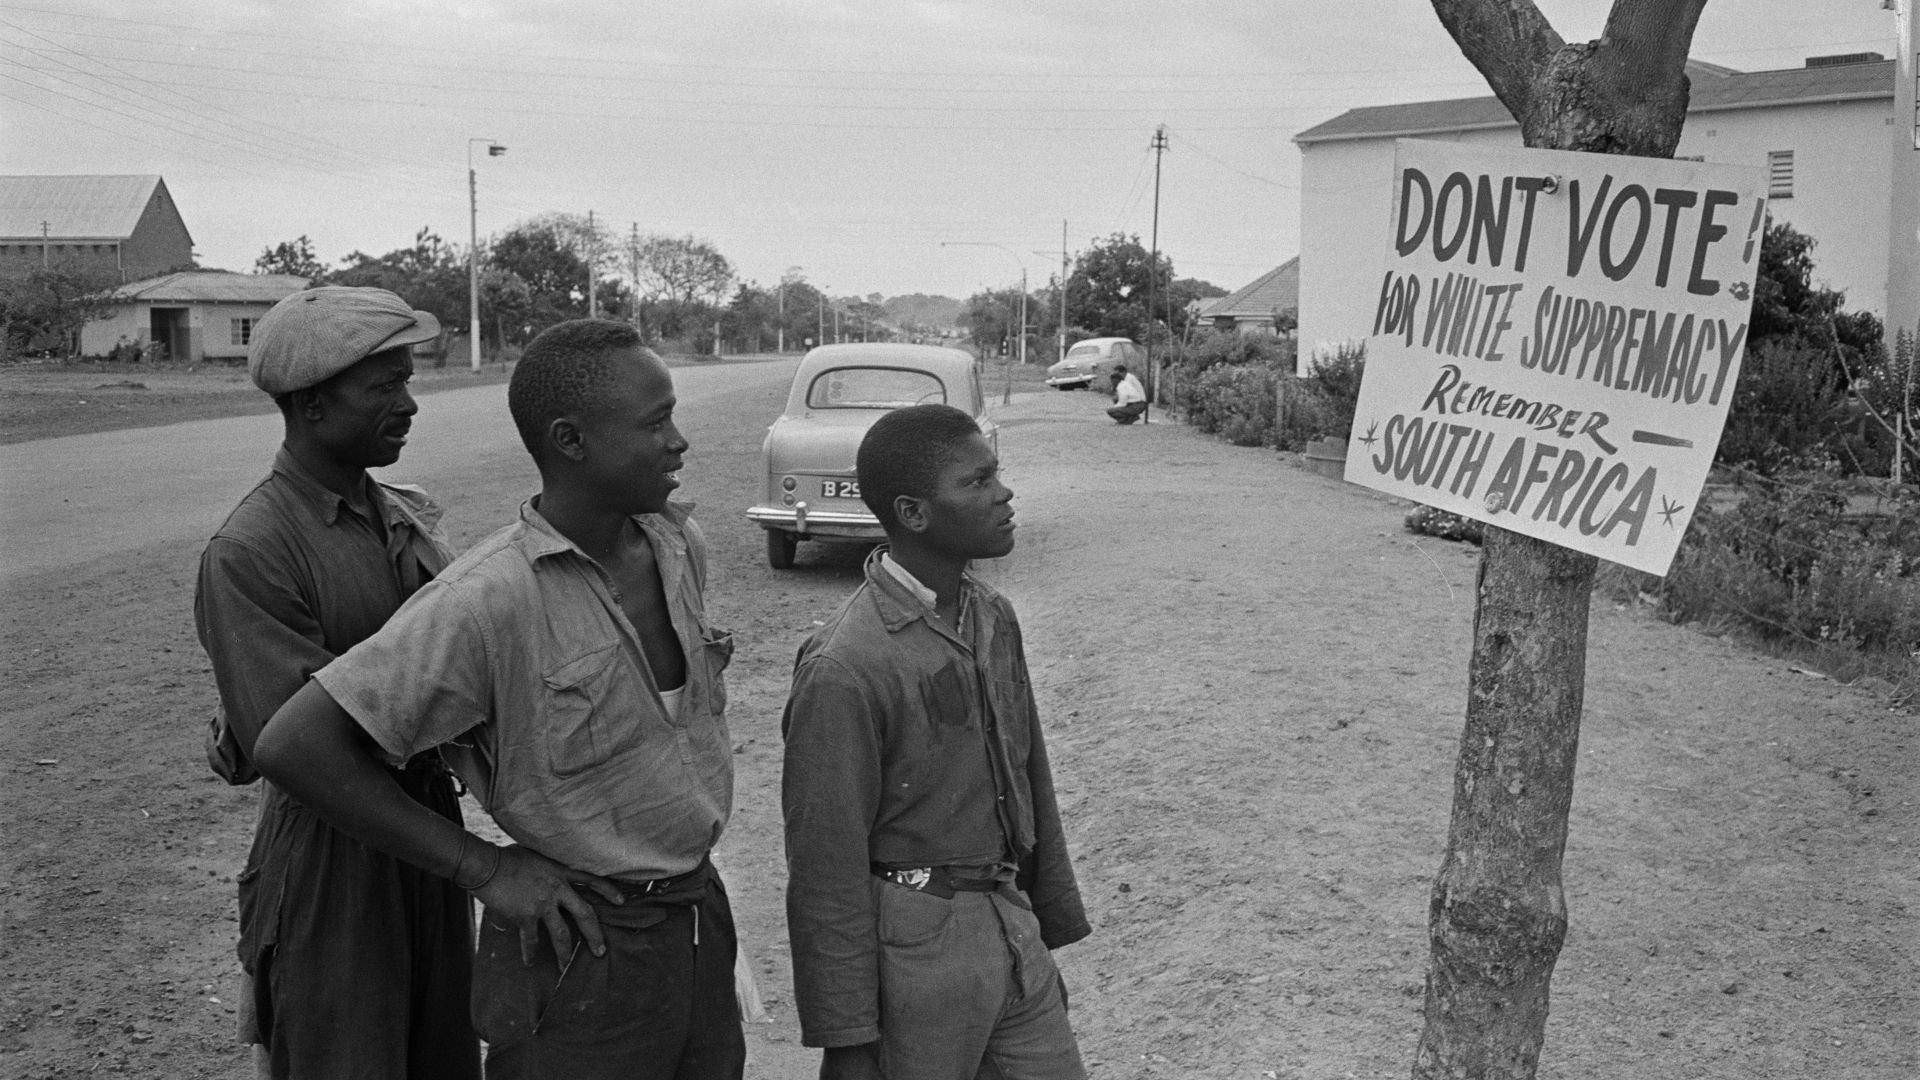 Local residents reading a voting sign during elections in Southern Rhodesia, 1964. (Credit: Daily Express/Hulton Archive/Getty Images)